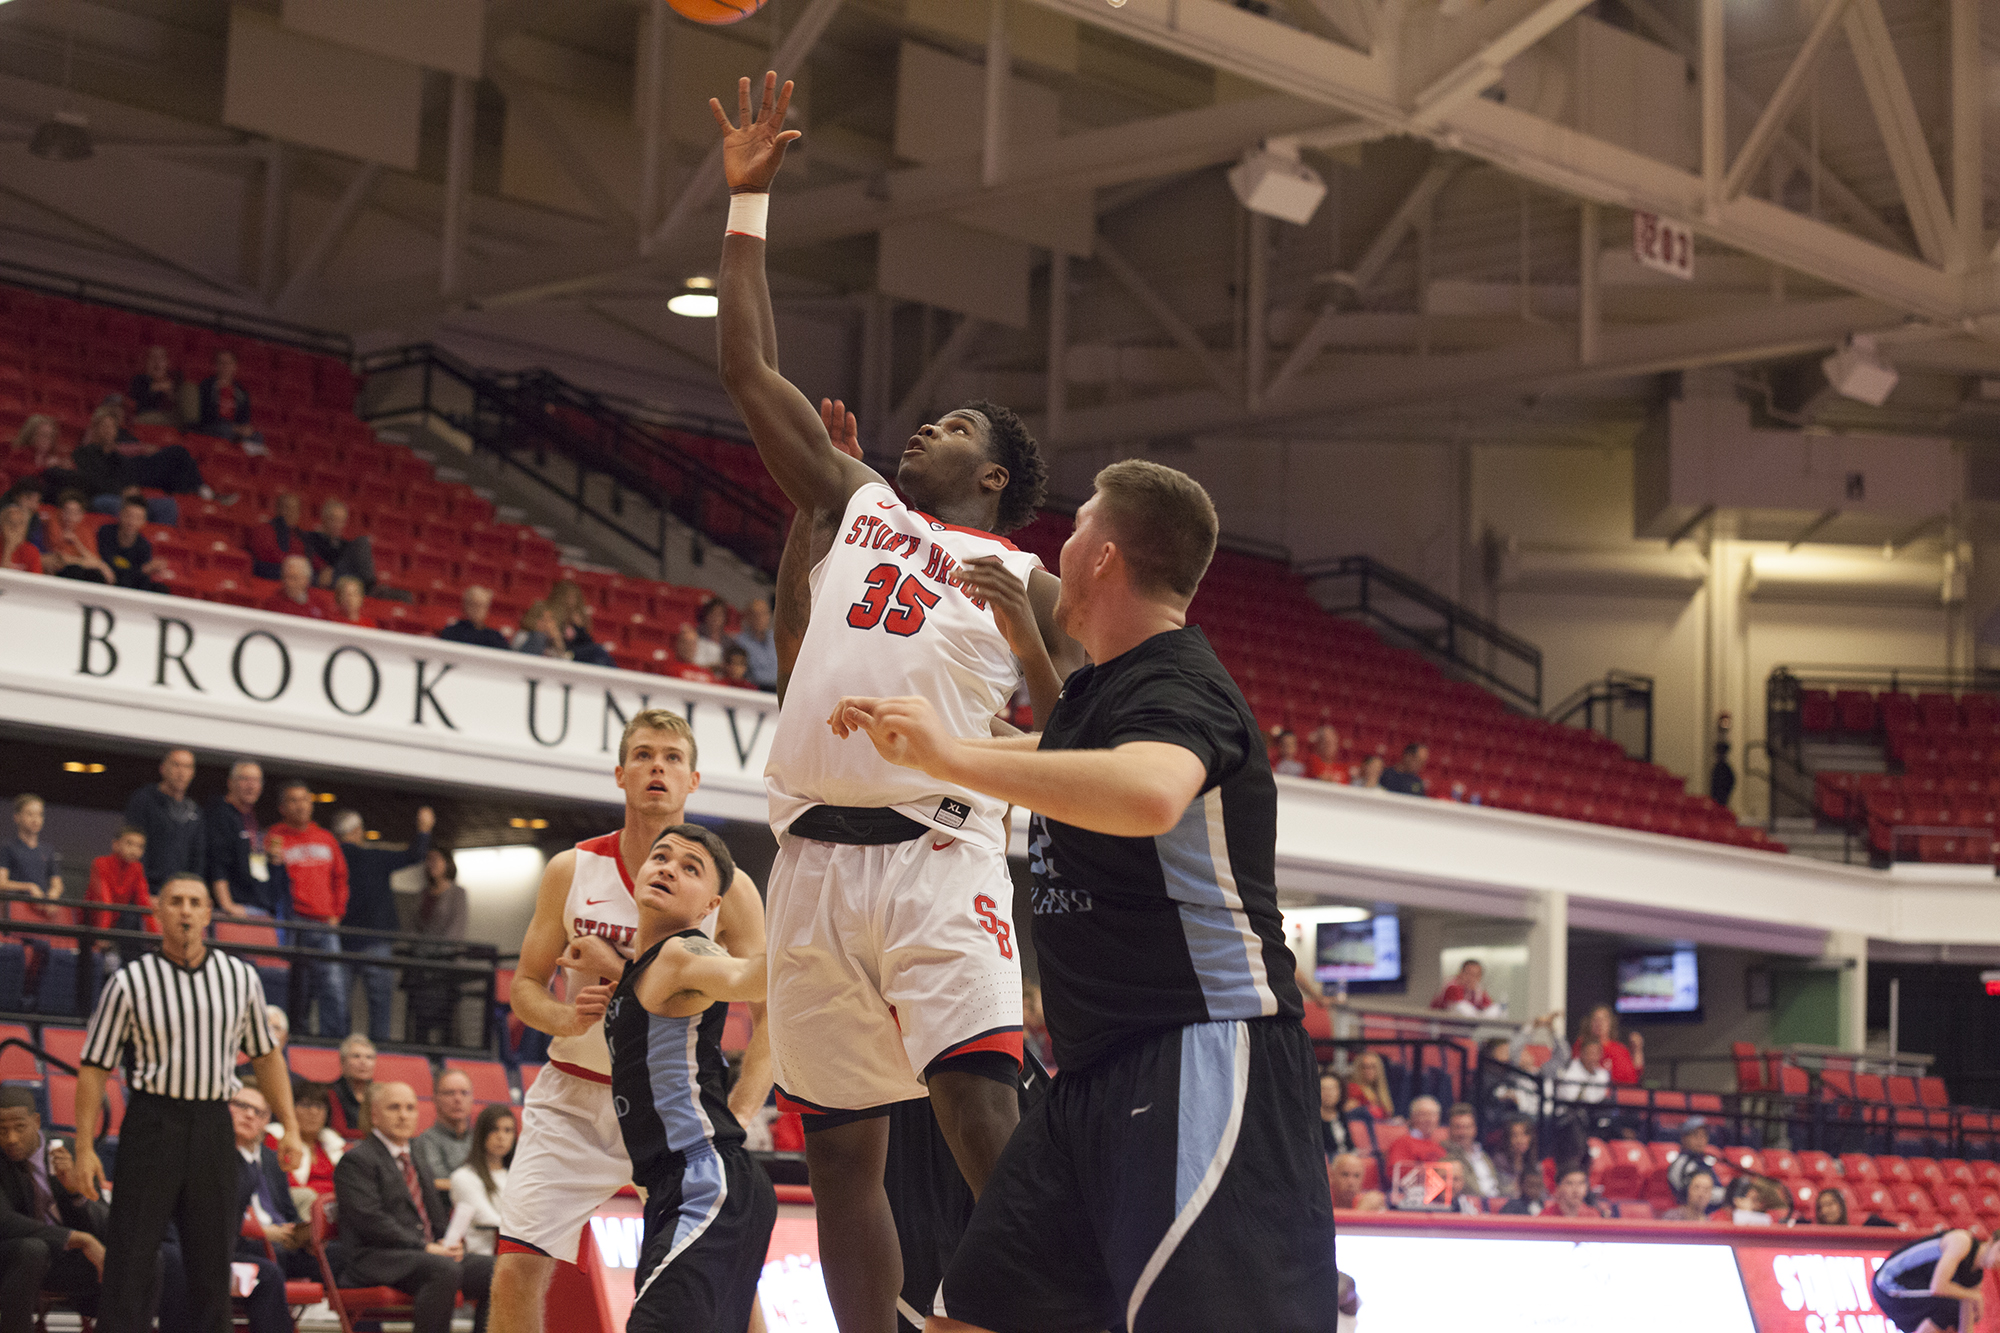 Ochefu hopes to carve out a role on the court in his first year with Men's Basketball